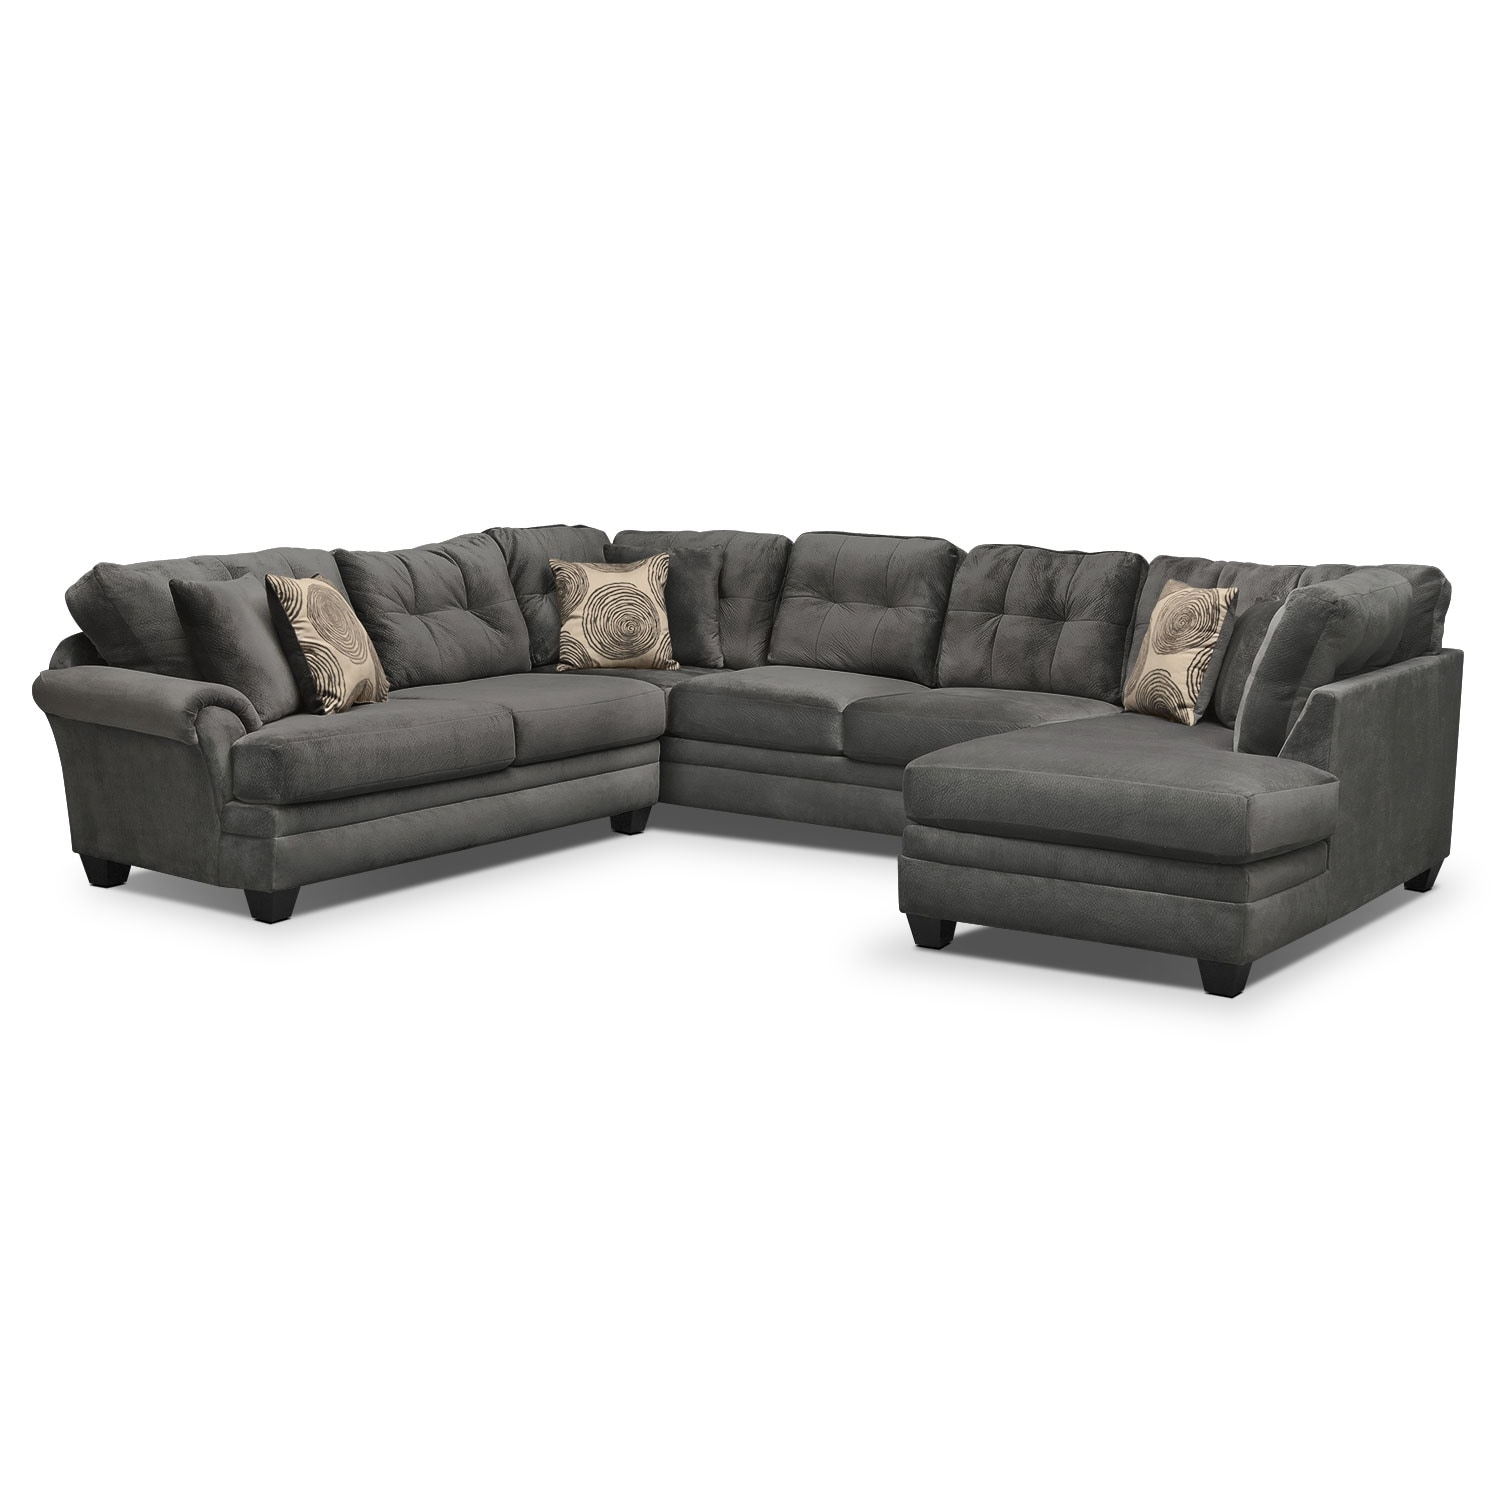 Cordelle 3 Piece Sectional With Right Facing Chaise   Gray